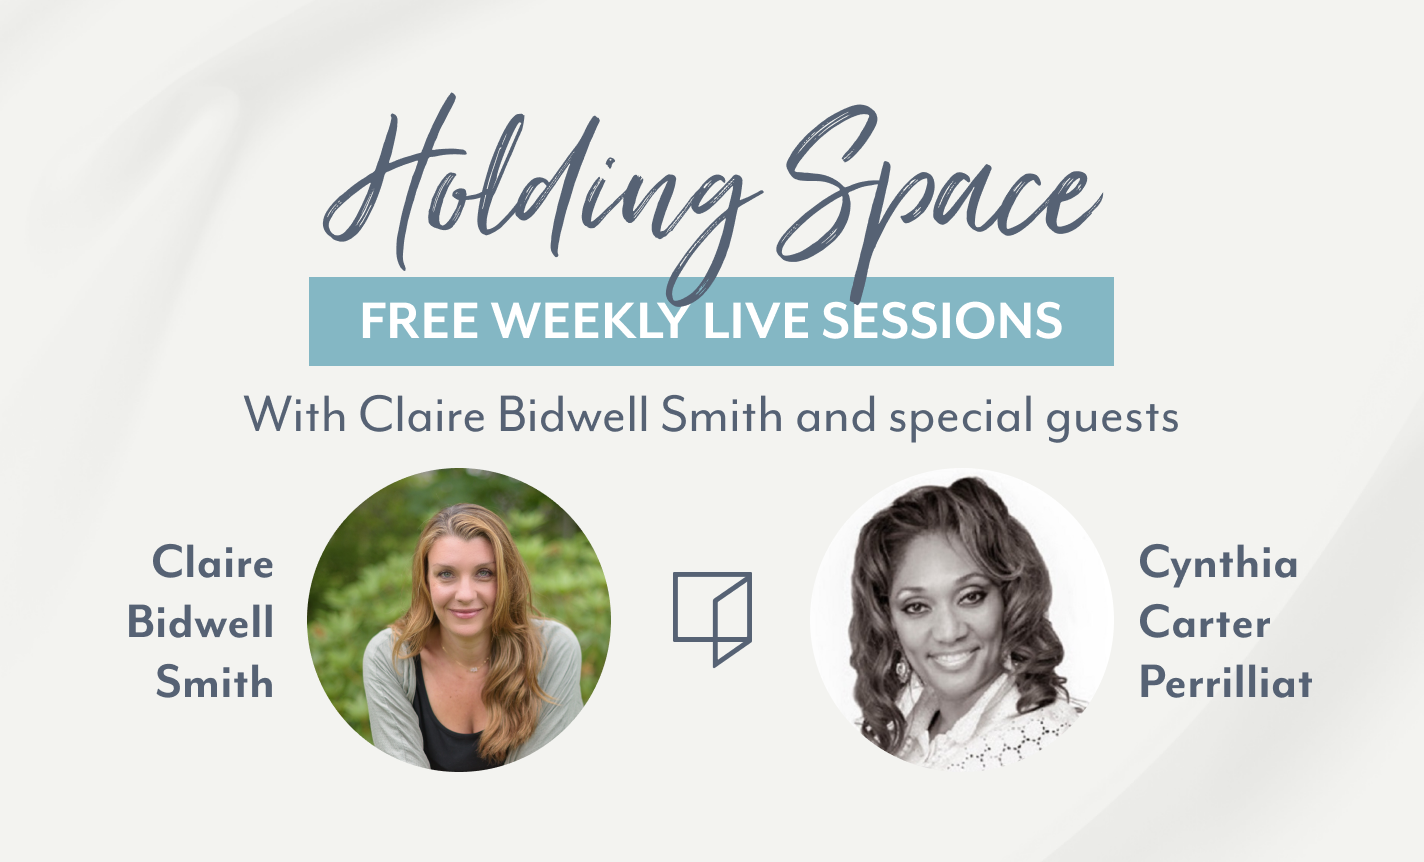 Holding Space: Claire Bidwell Smith & Cynthia Carter Perrilliat